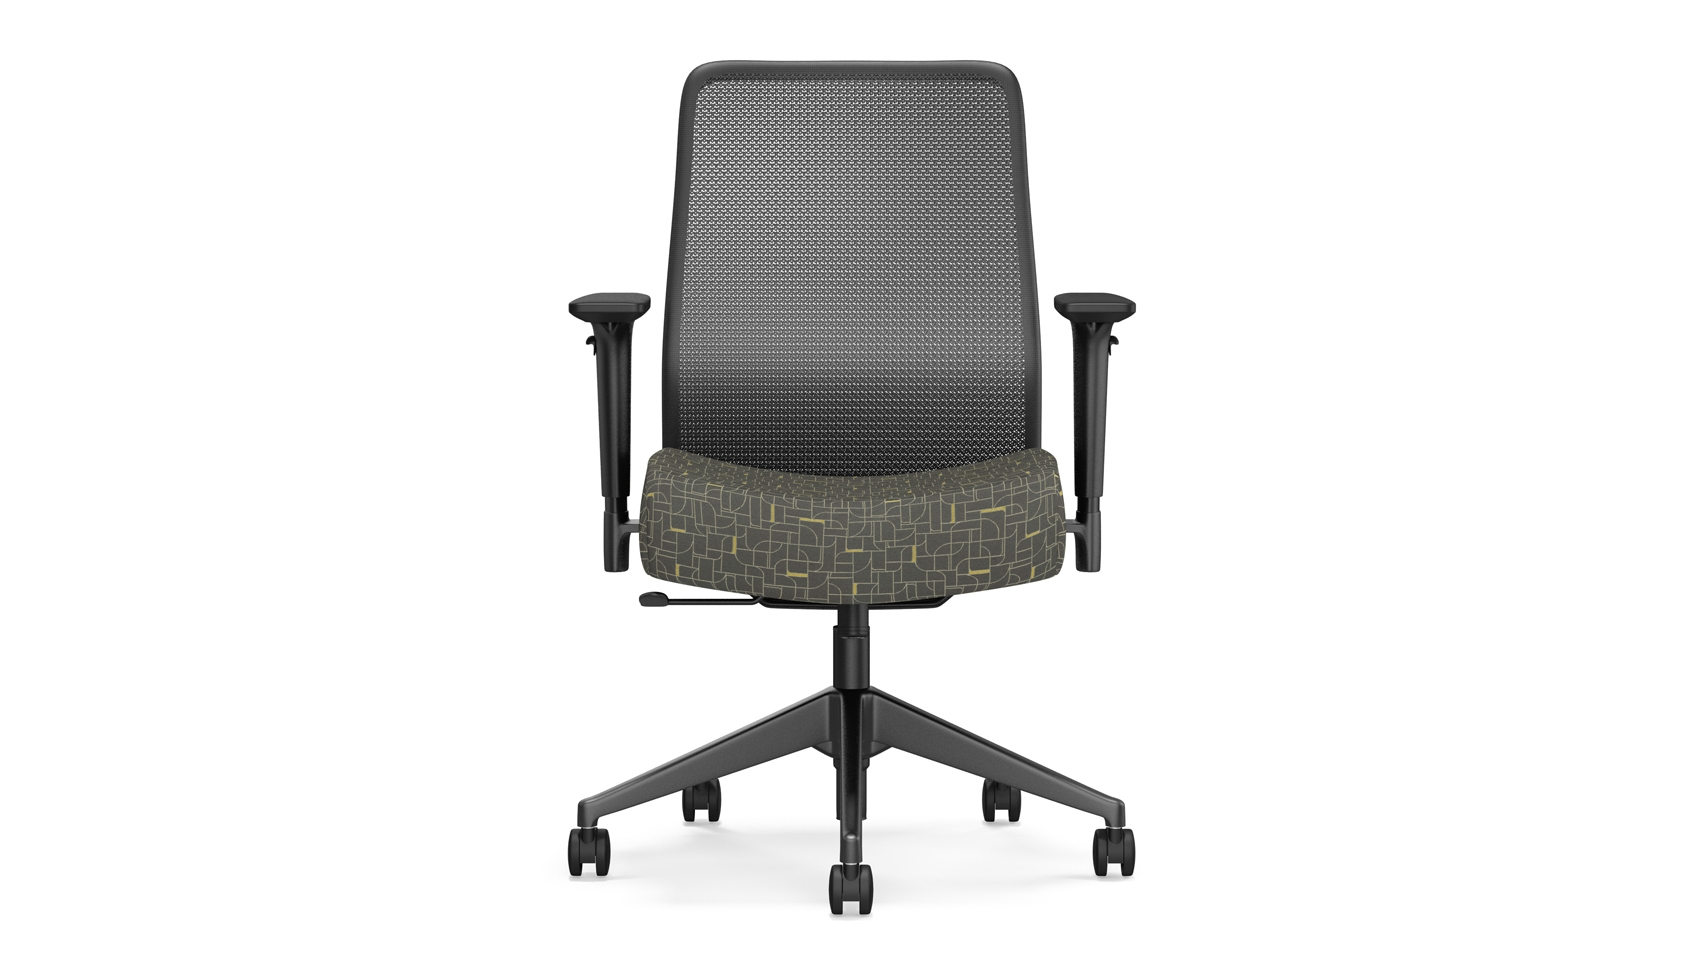 Officeworks Ergonomic Chairs Baku Chair Officeworks Checknows Co